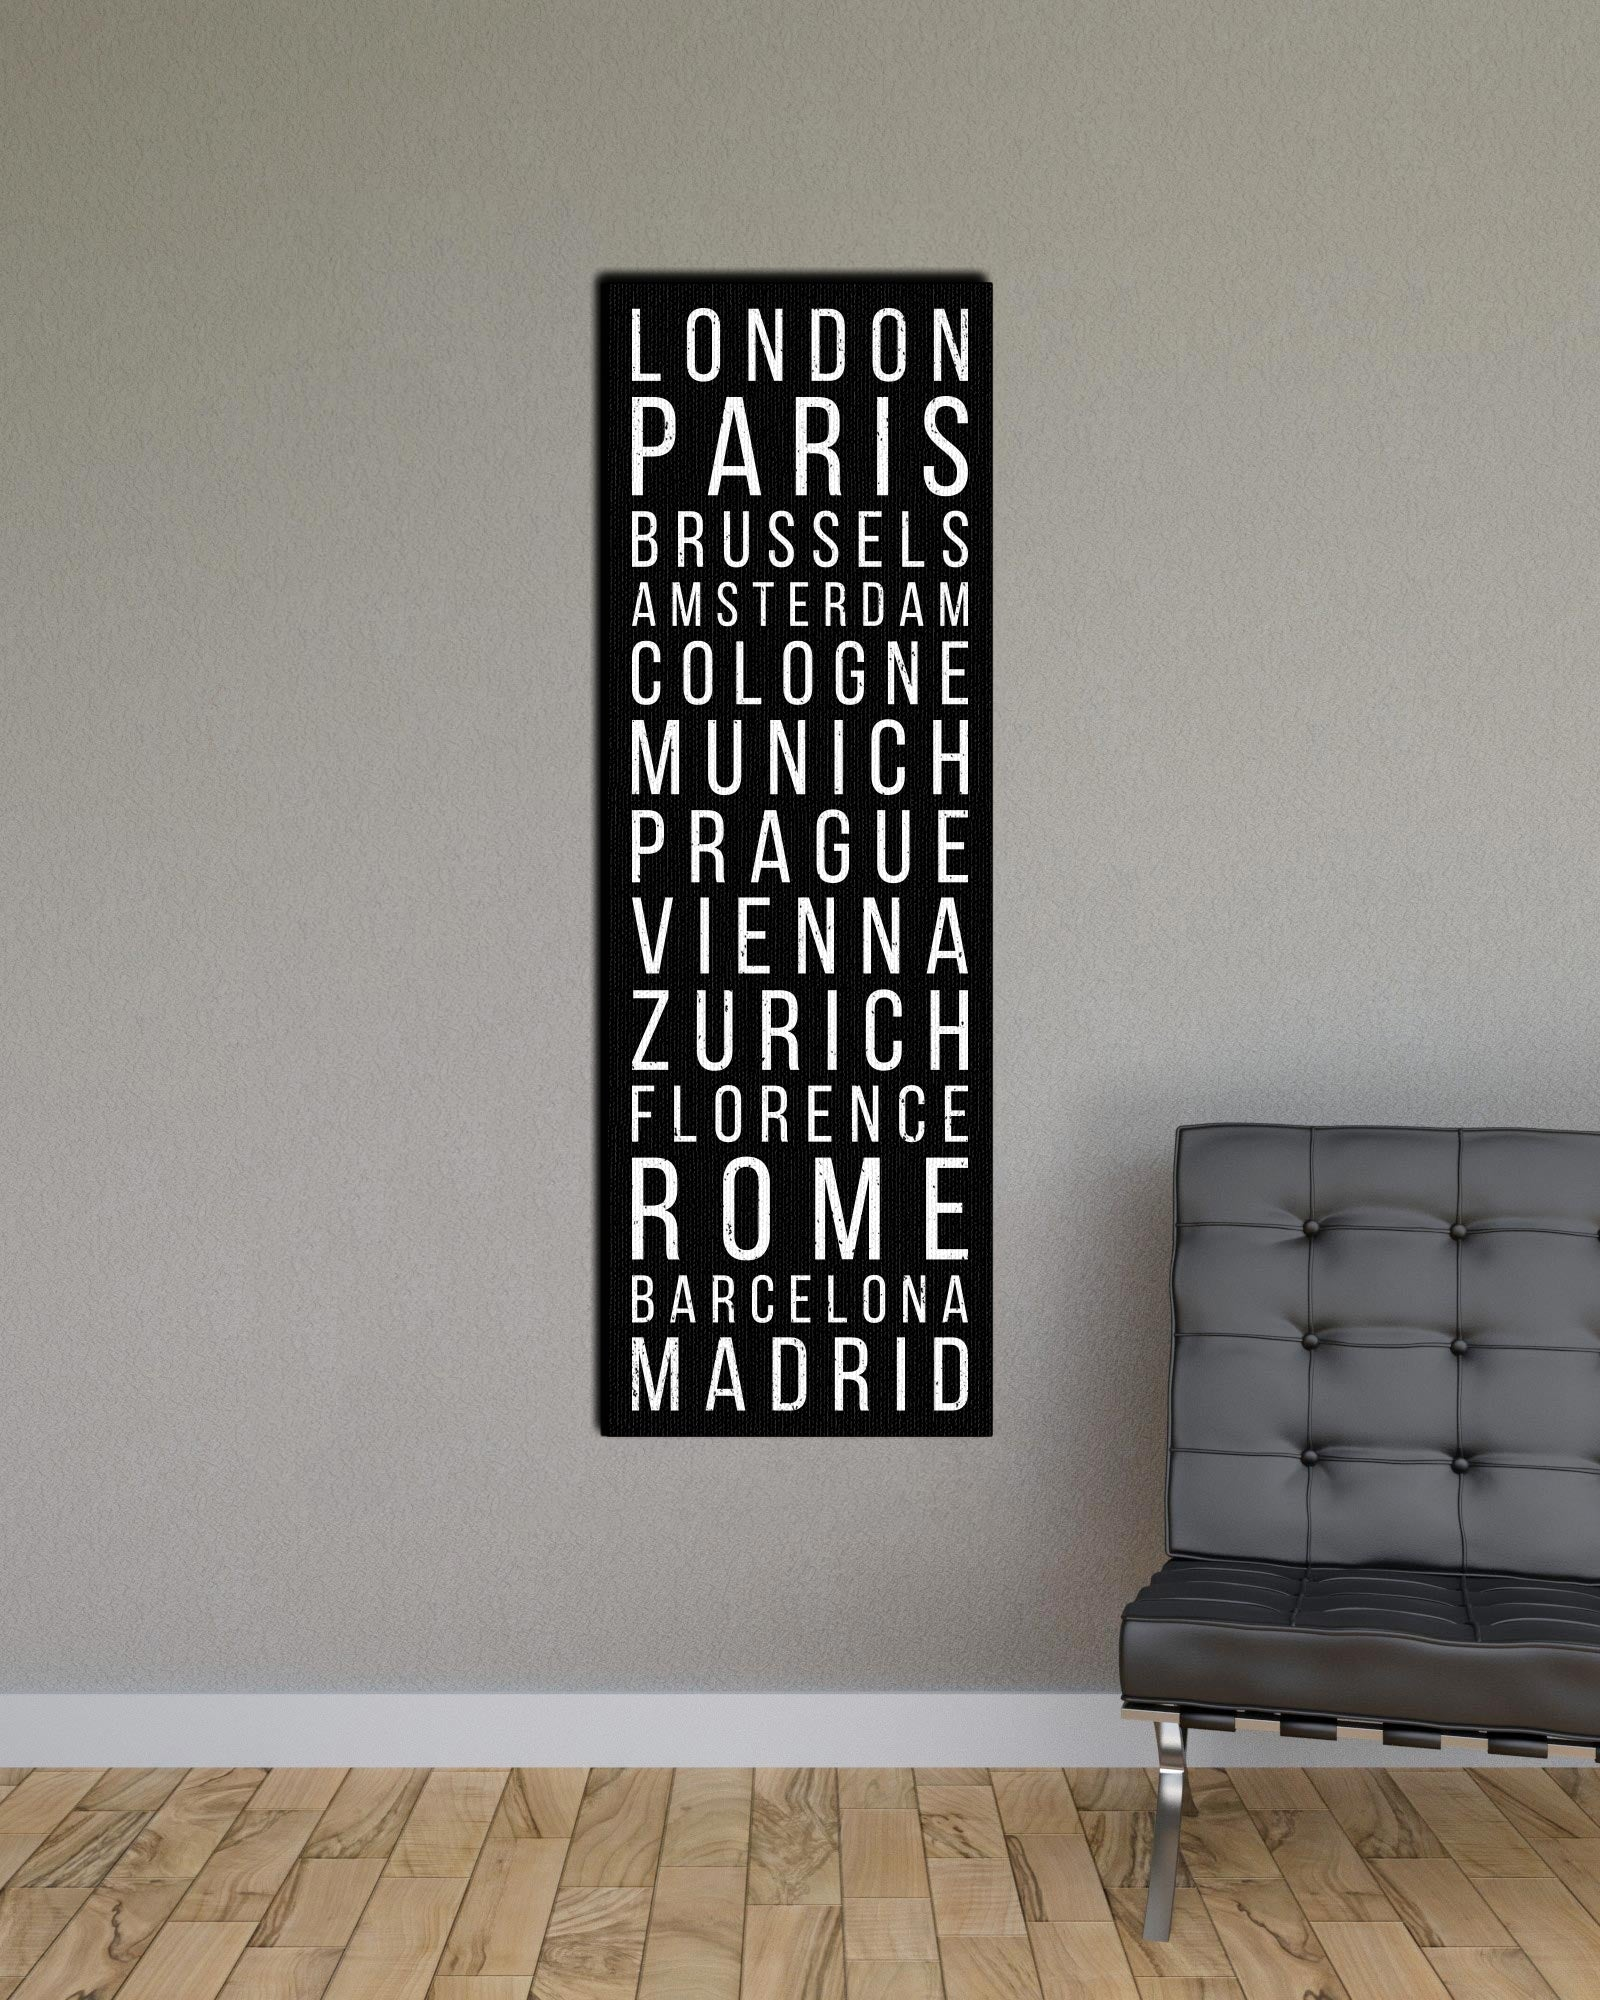 Europe London paris brussels Bus Scroll Subway Print